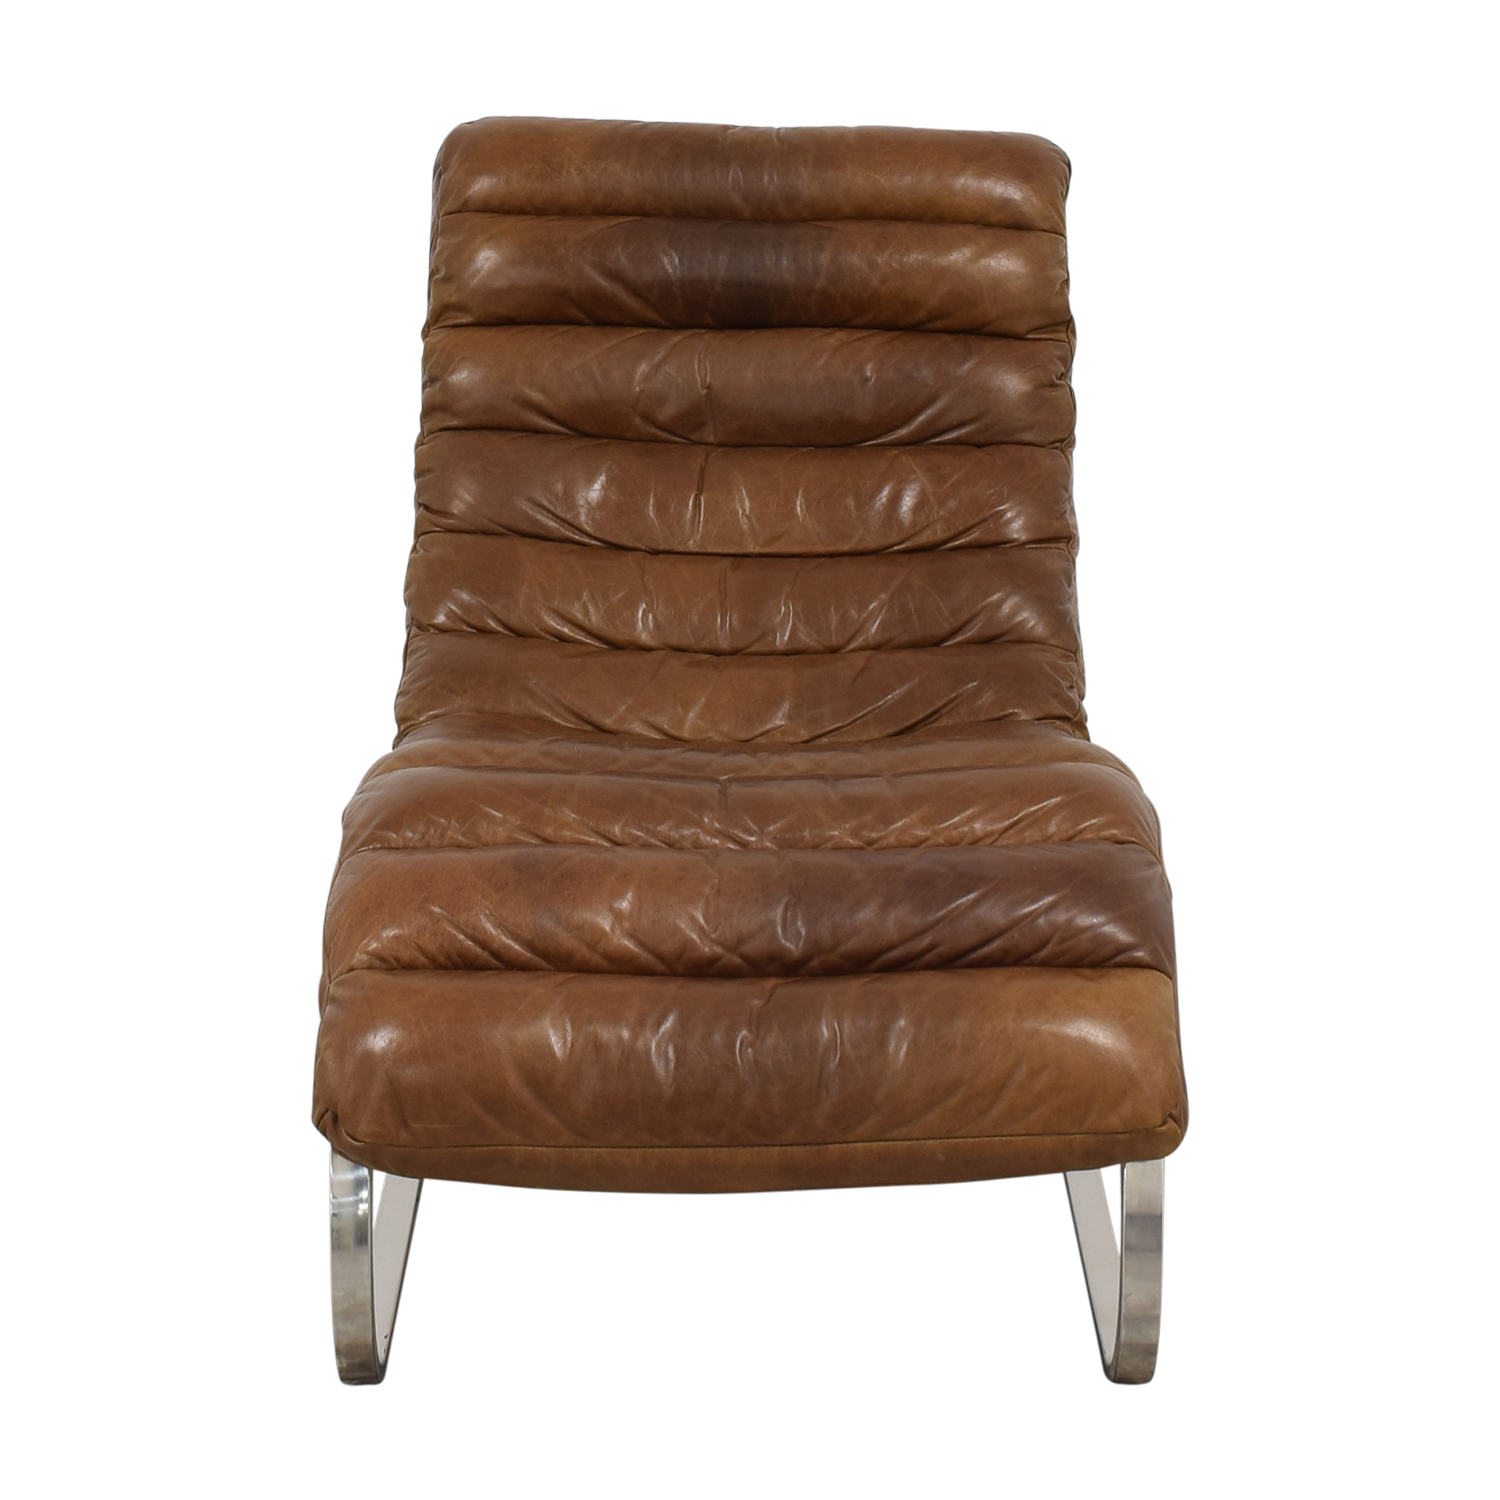 Awe Inspiring 68 Off Restoration Hardware Restoration Hardware Oviedo Leather Chair Sofas Creativecarmelina Interior Chair Design Creativecarmelinacom